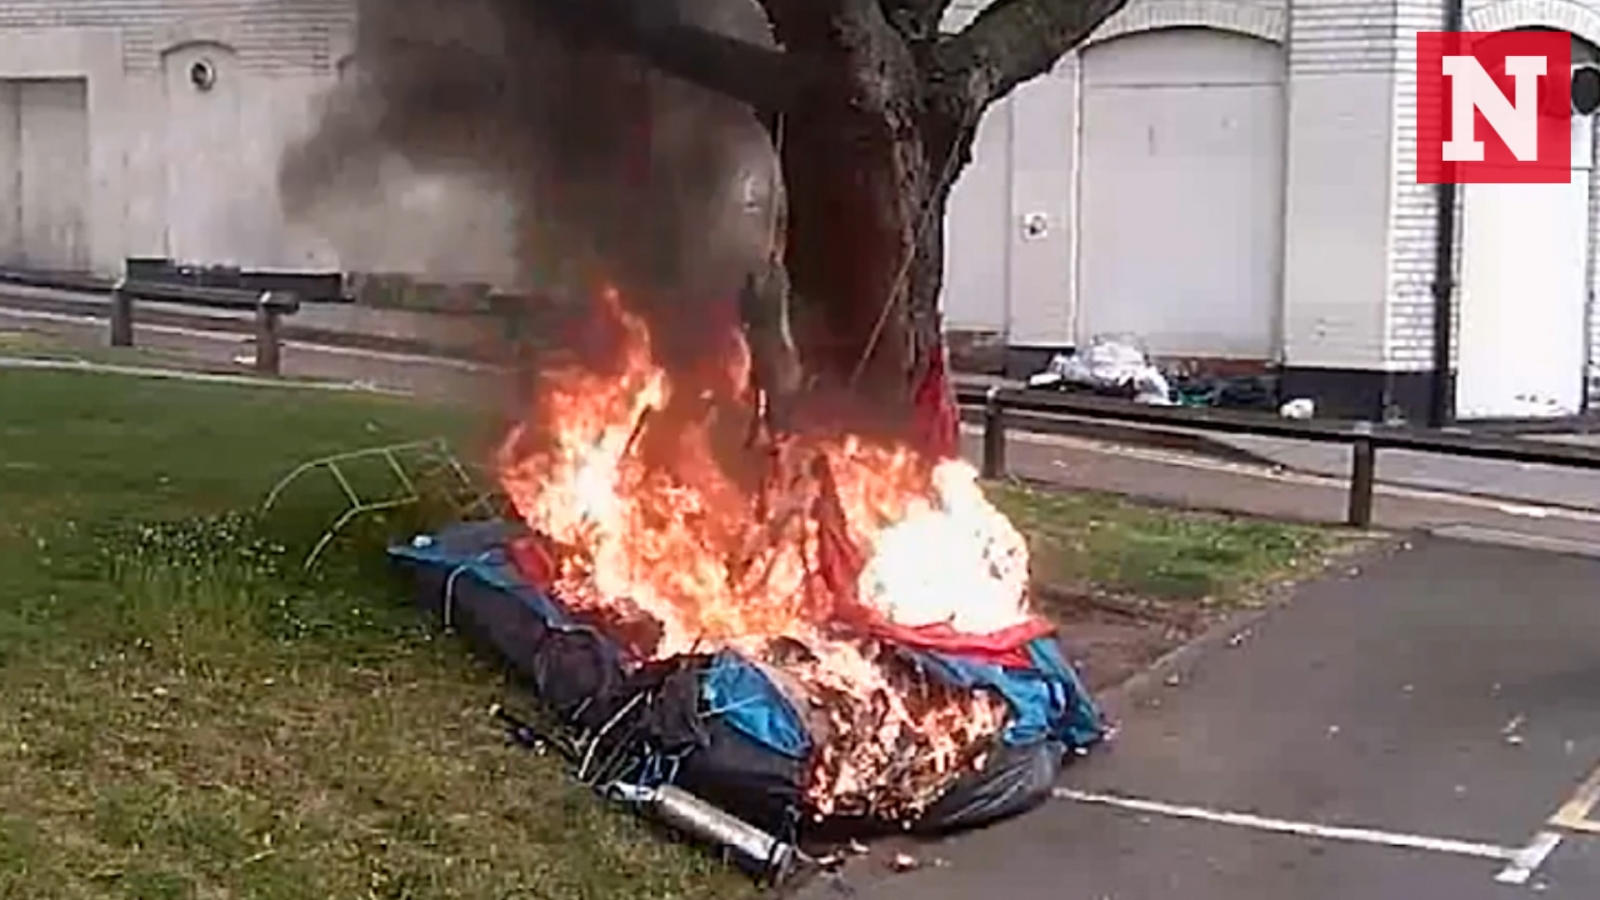 cctv-shows-arsonist-setting-homeless-mans-tent-on-fire-while-he-was-inside